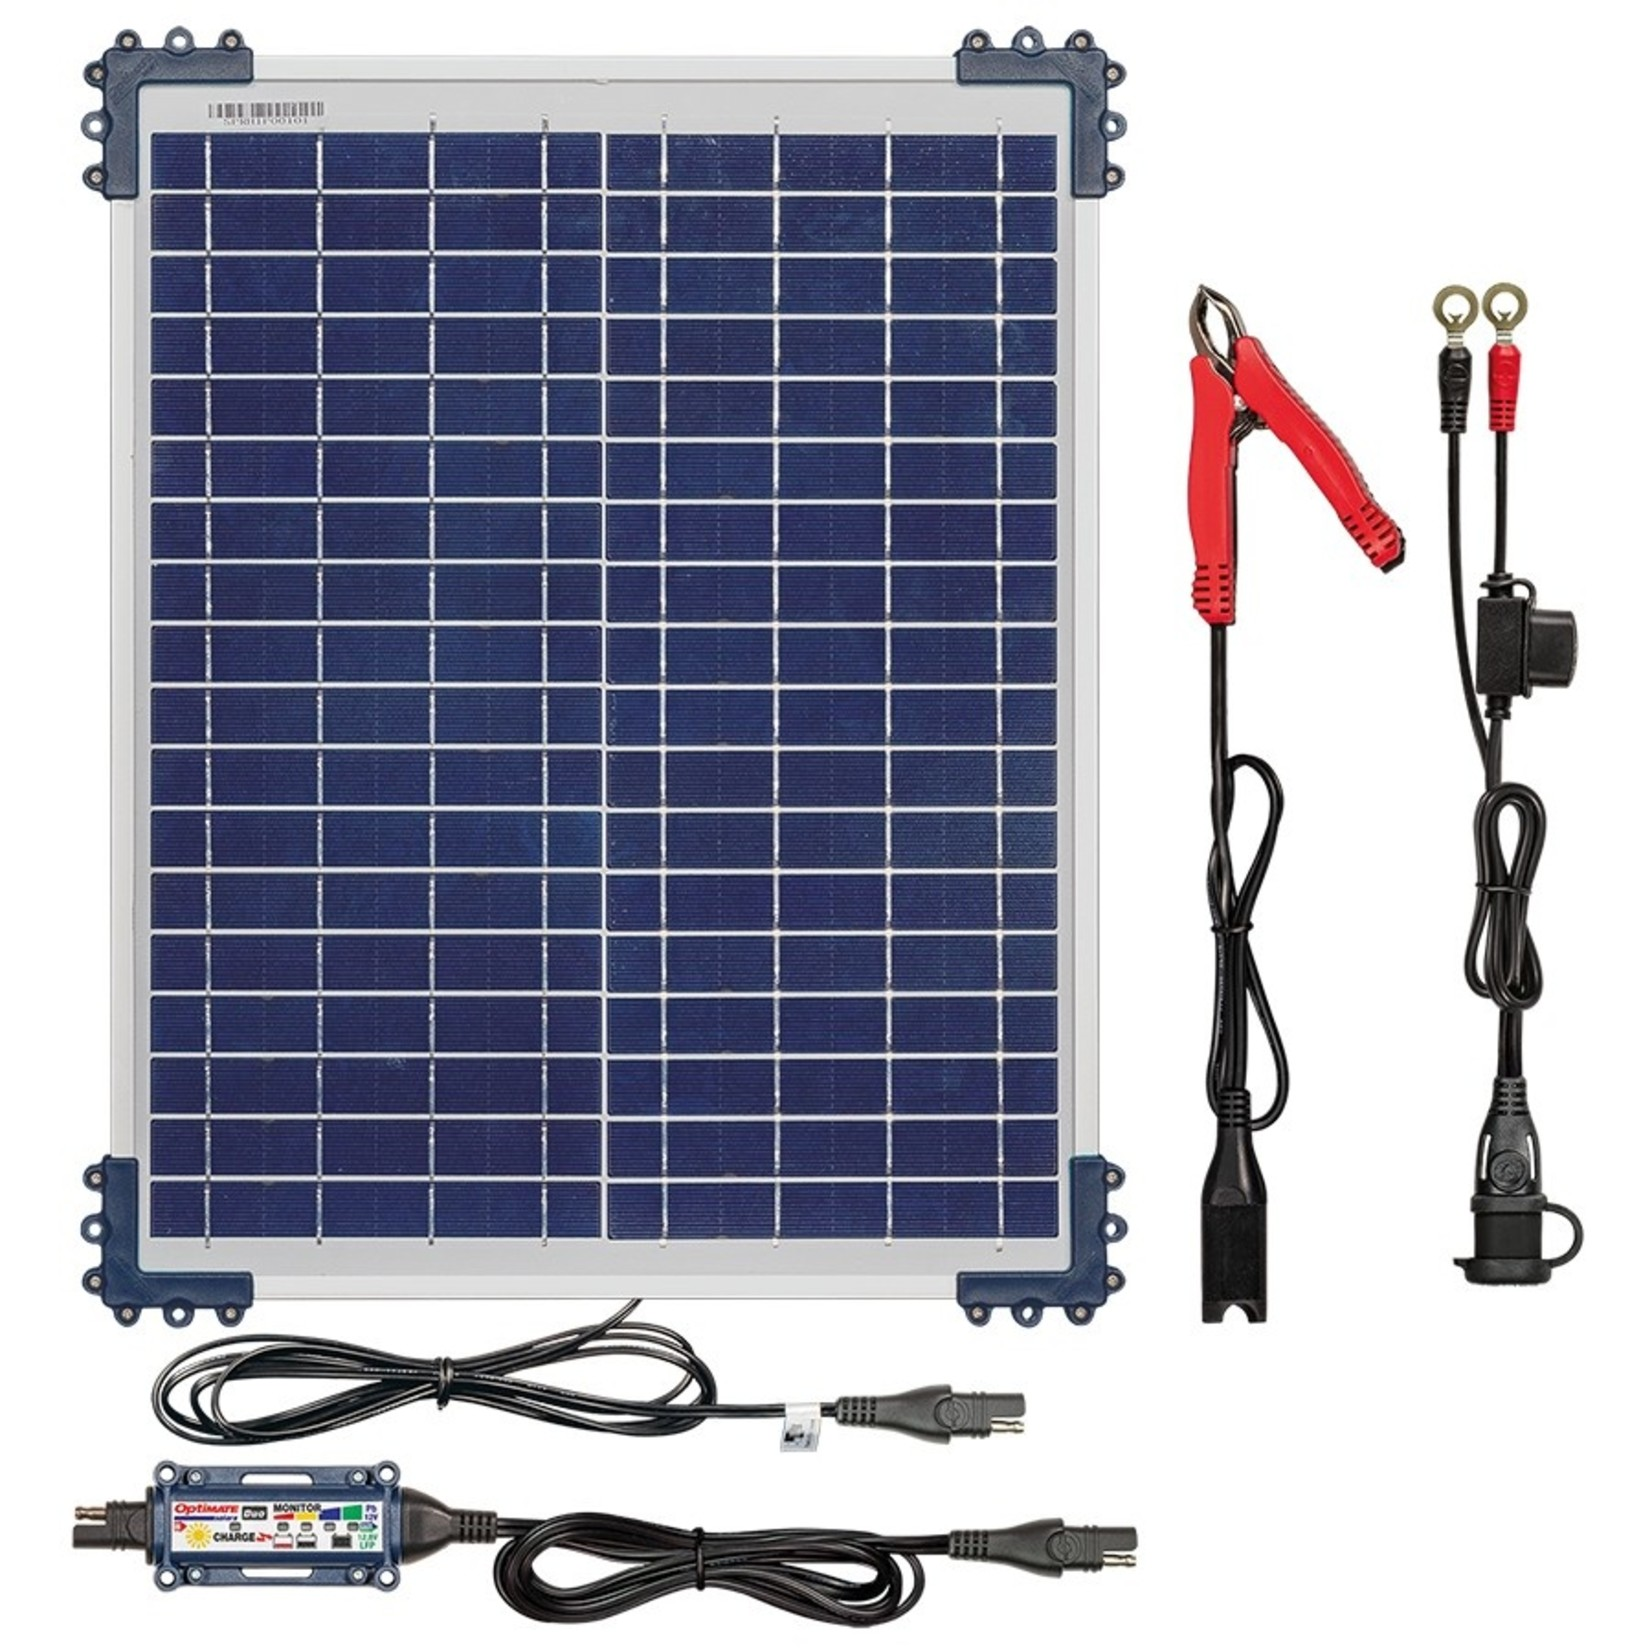 OptiMate DUO Solar 20W - Battery Charger